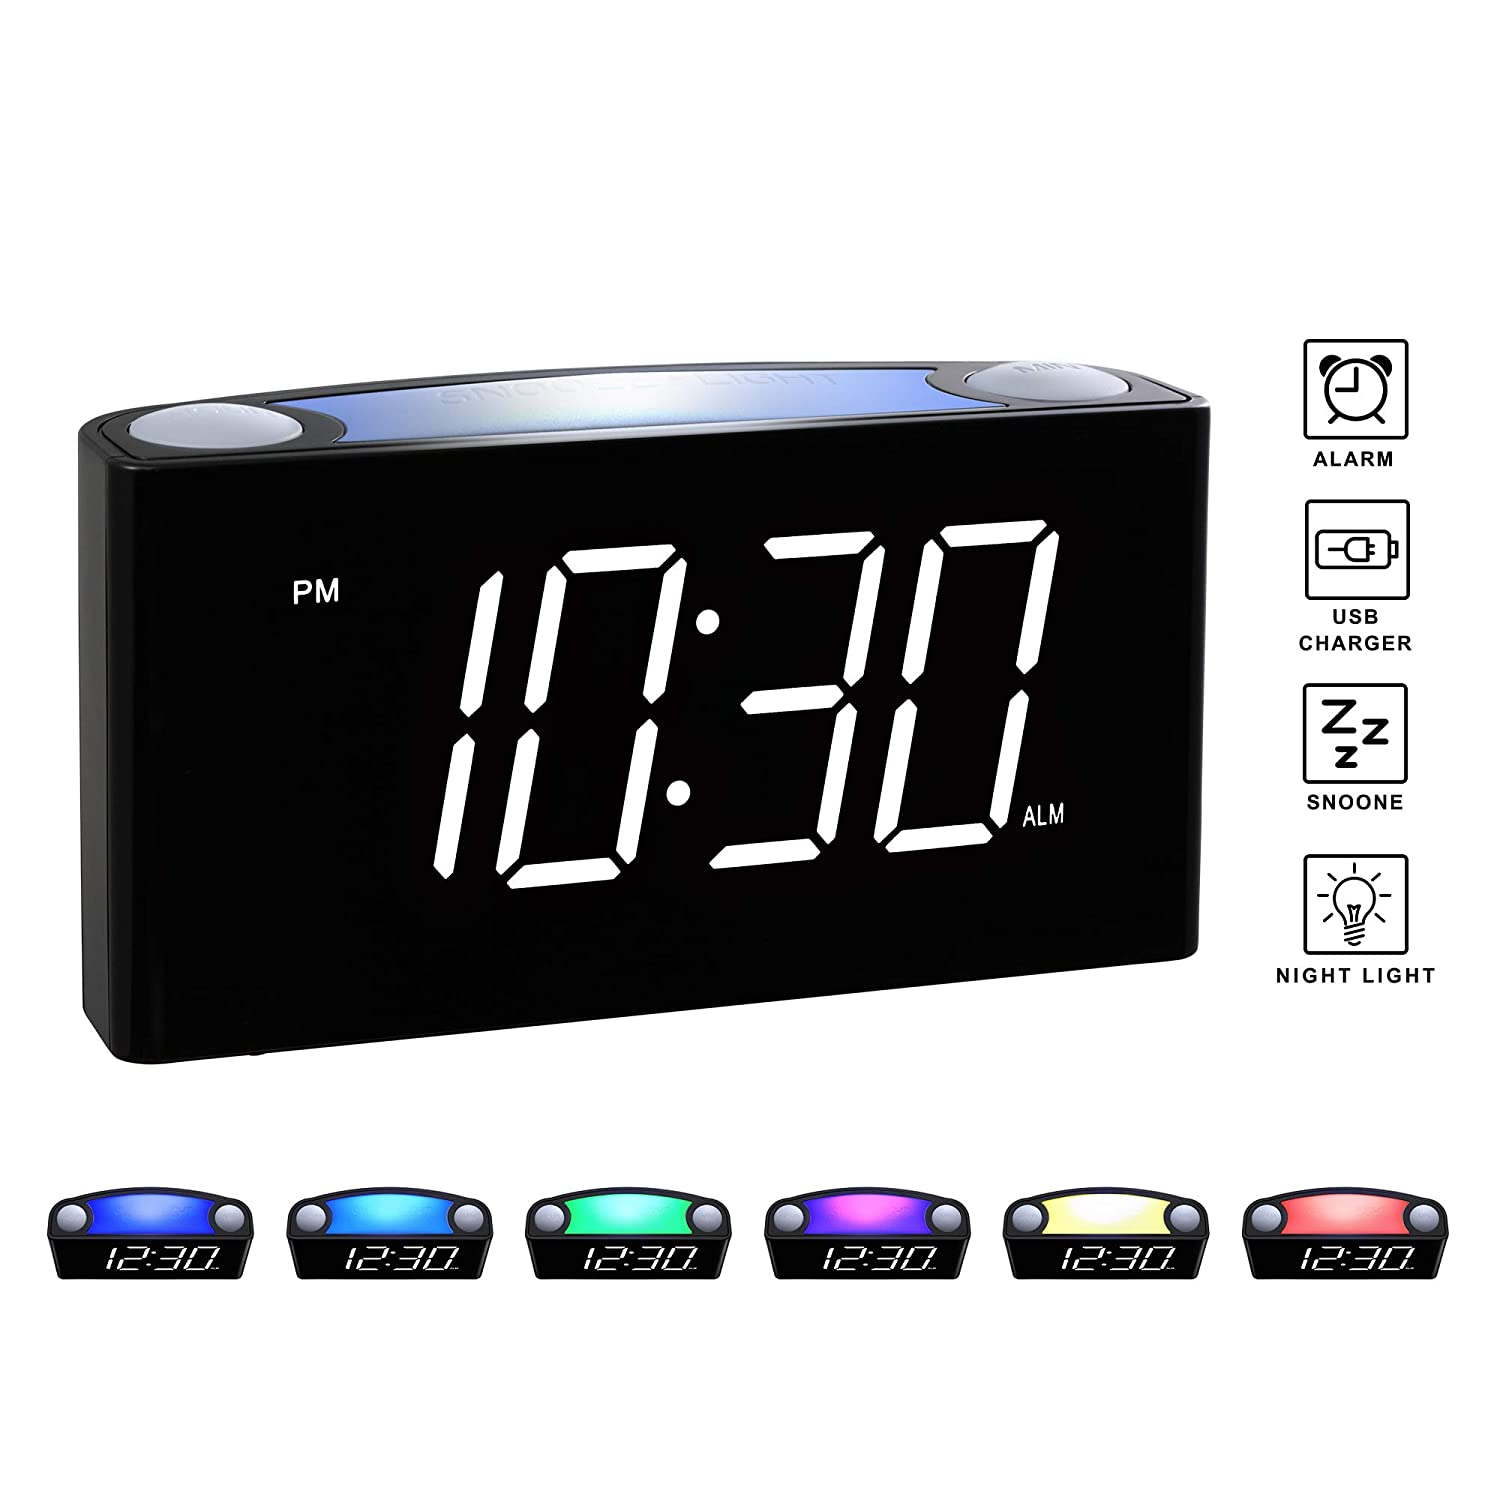 Digital Alarm Clock for Bedrooms, 12/24 Hours for Heavy Sleepers, Kids, Desk, Elderly